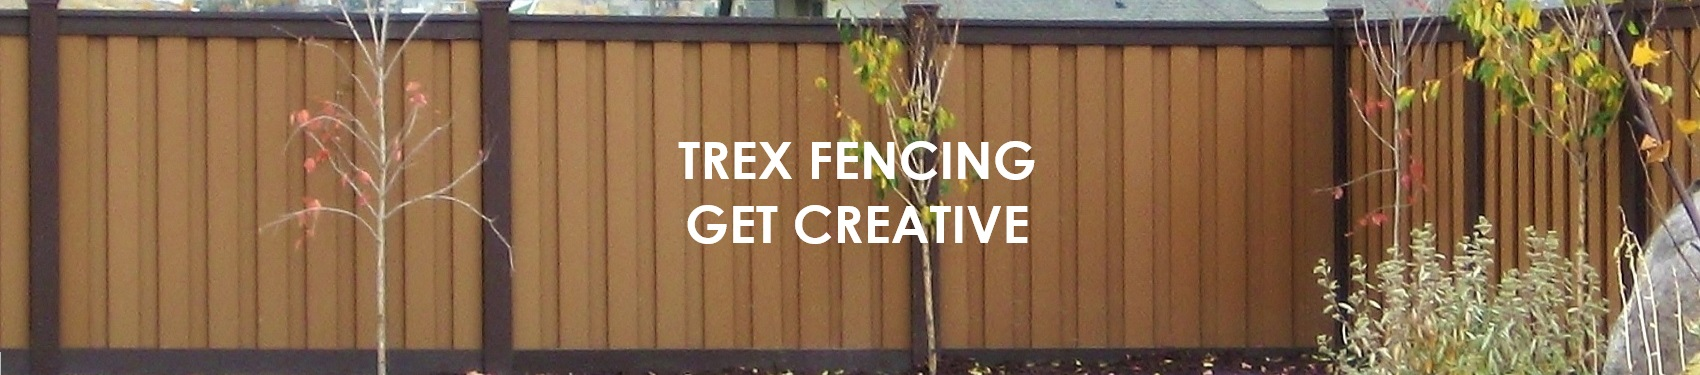 Creative Uses of Trex Wood Alternative Fencing